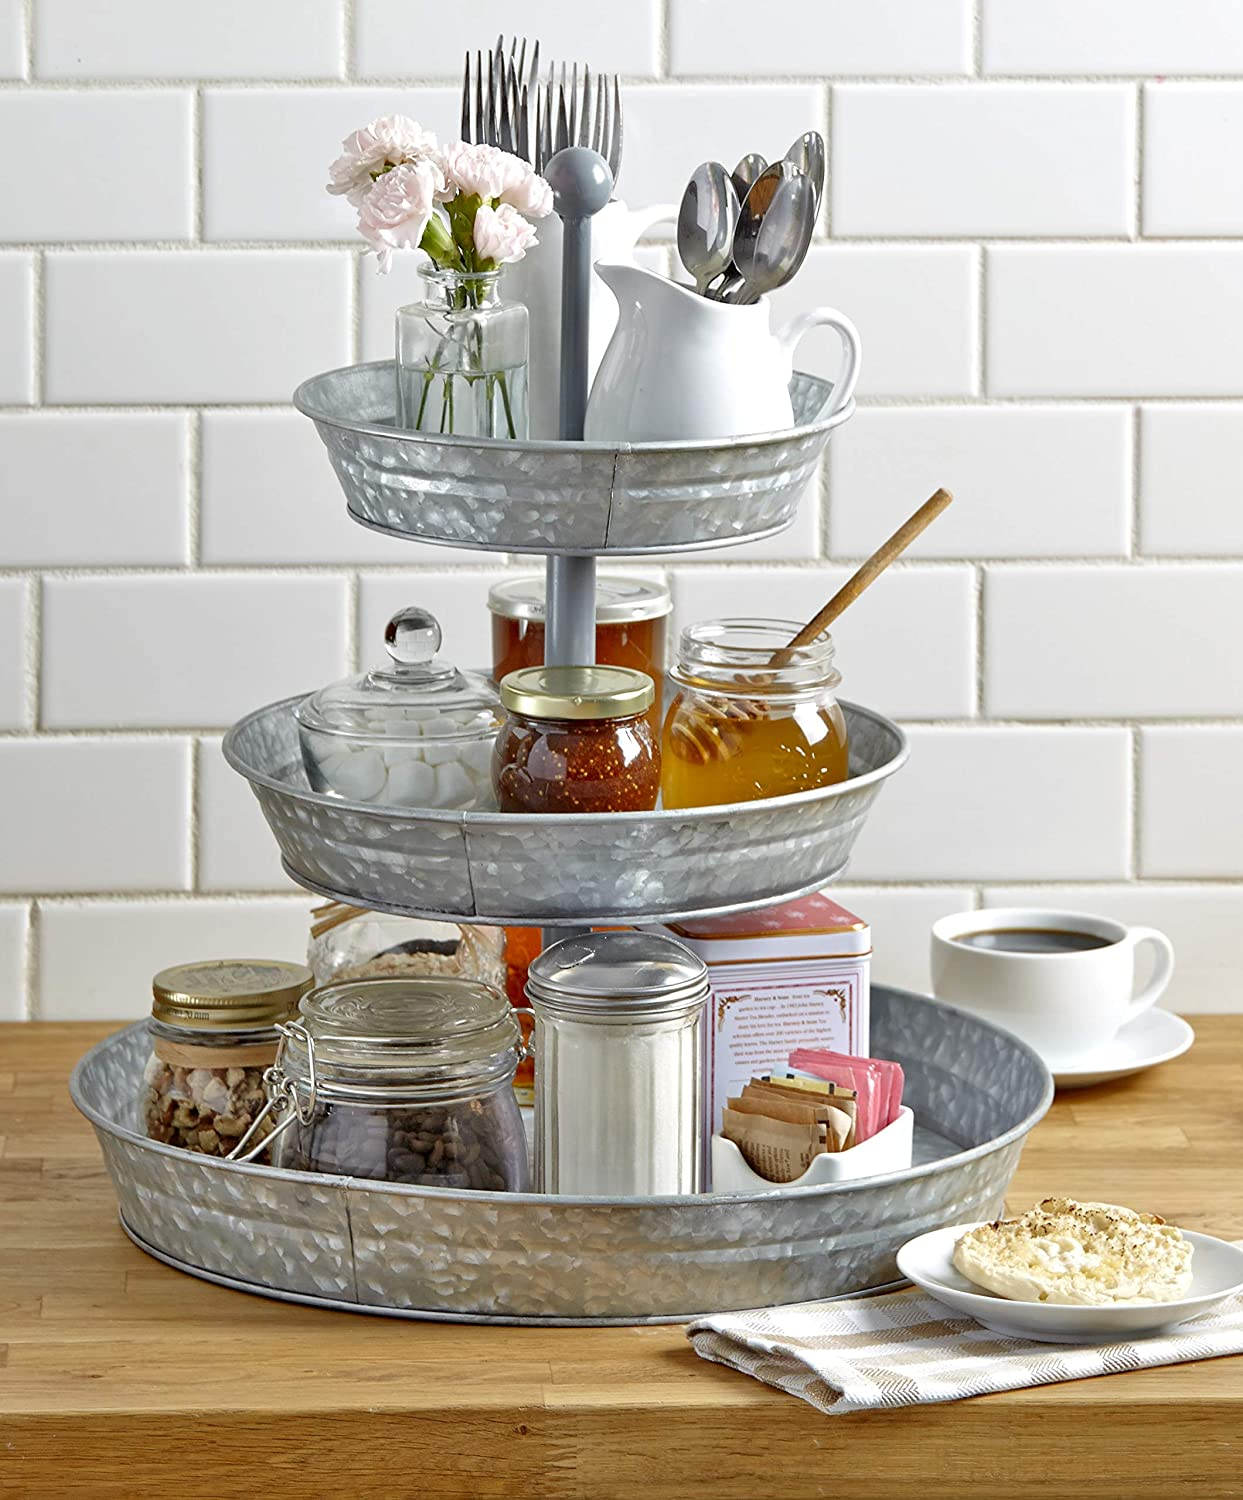 GetSet2Save BM164575 Vintage Galvanized 3 Tier Serving Tray Rustic Country Farmhouse Kitchen, one size, Silver